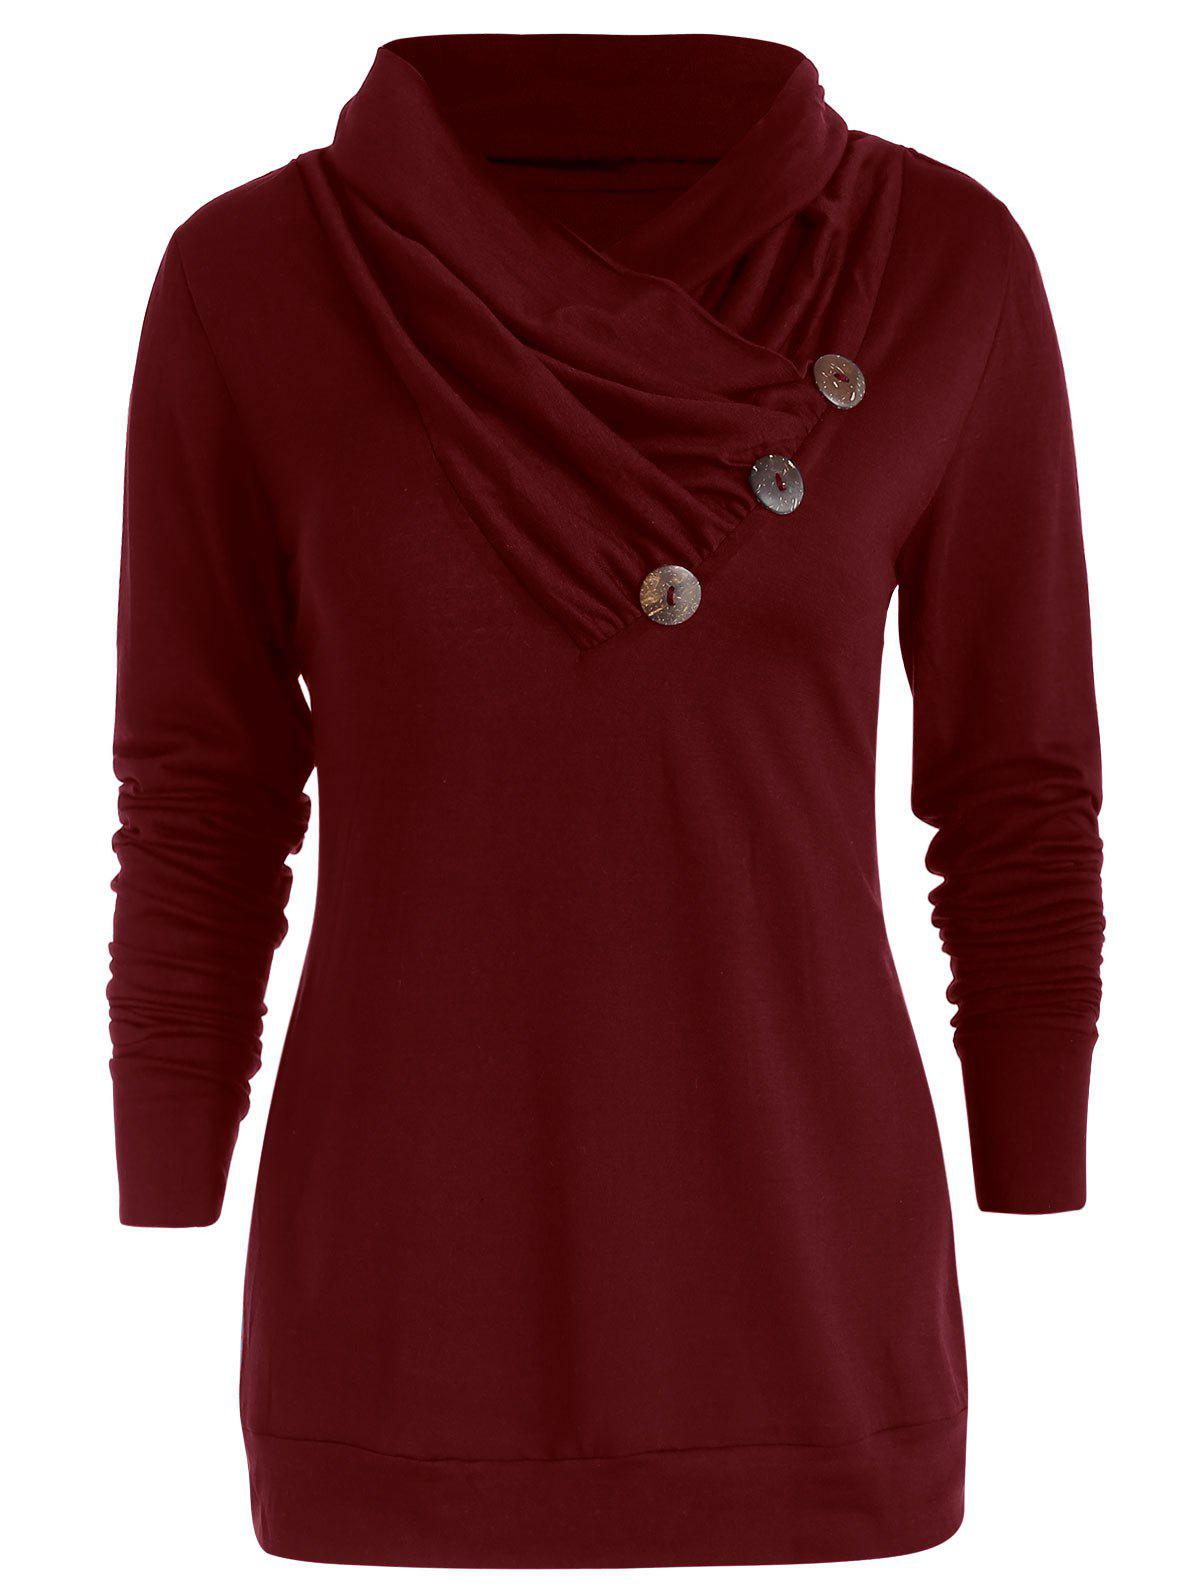 Affordable Cowl Neck Button Embellished T Shirt